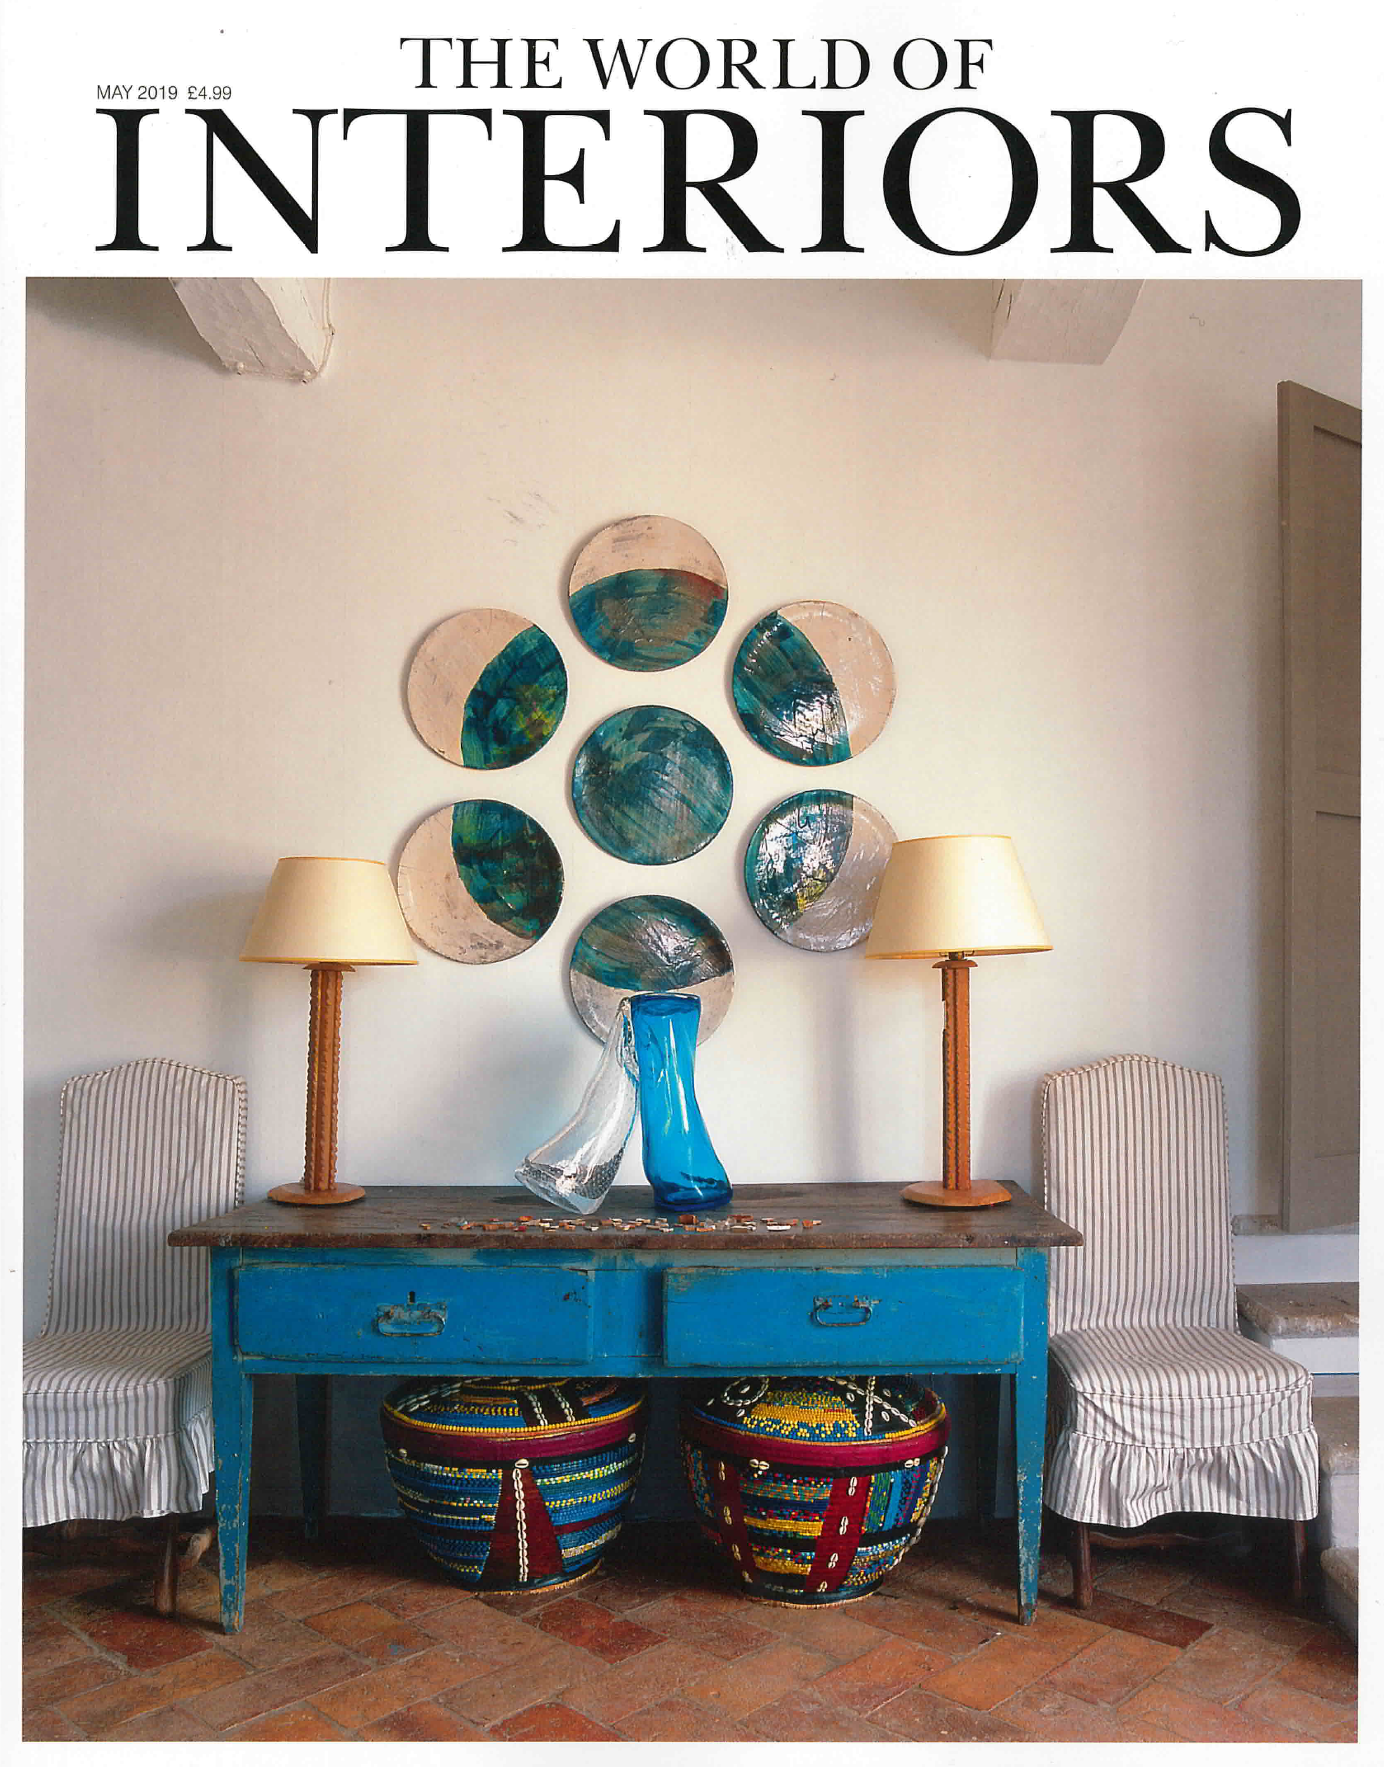 As seen in World of Interiors // May 2019 // The Treasure Chest